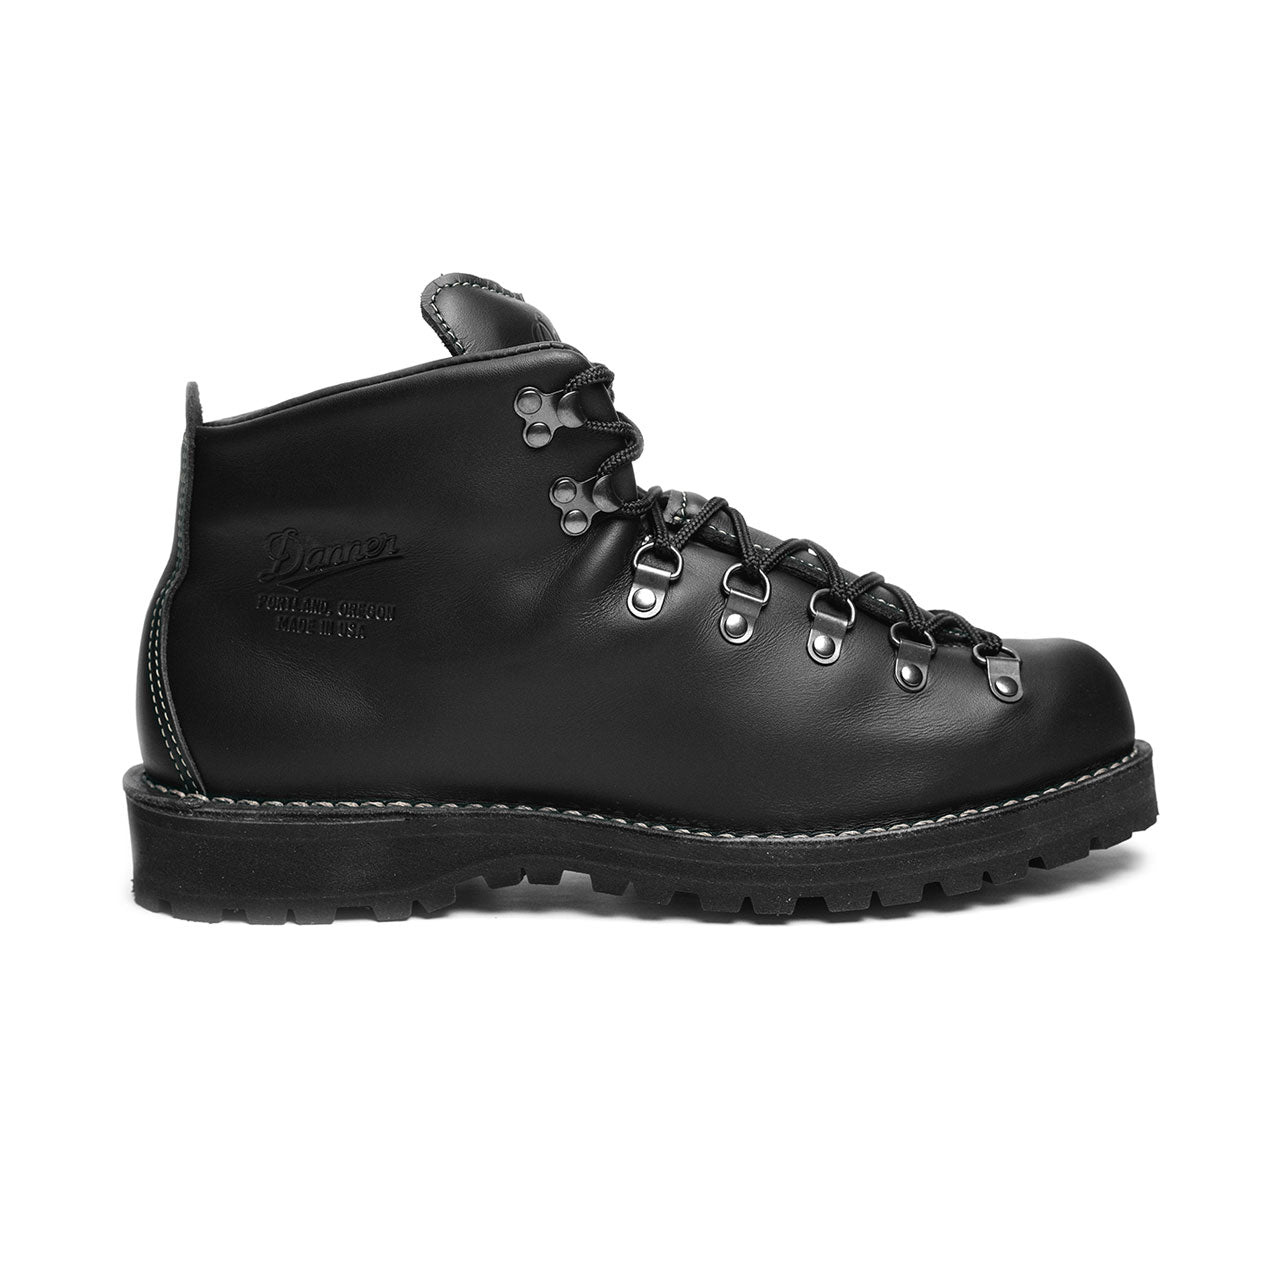 Danner Mountain Light II Bond Boot